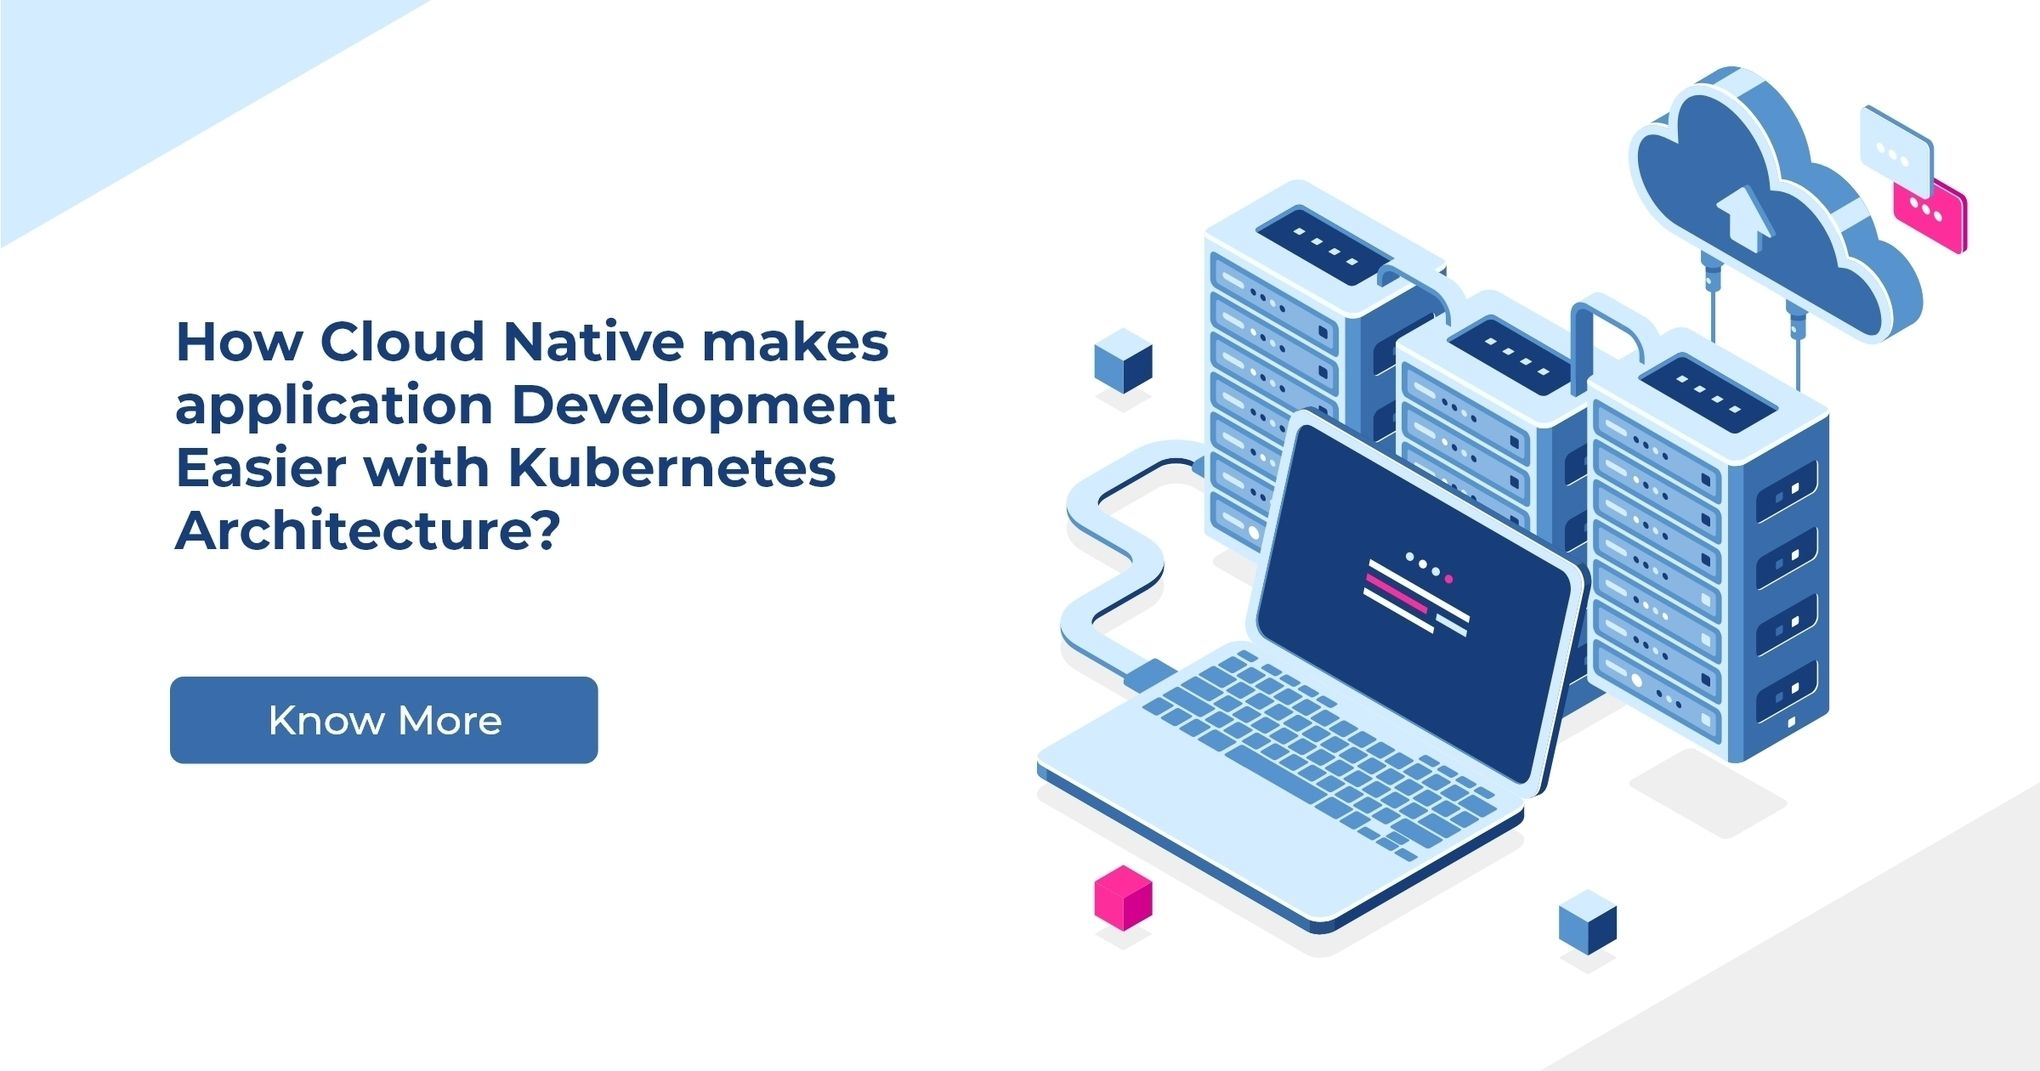 How cloud native makes application development easier with